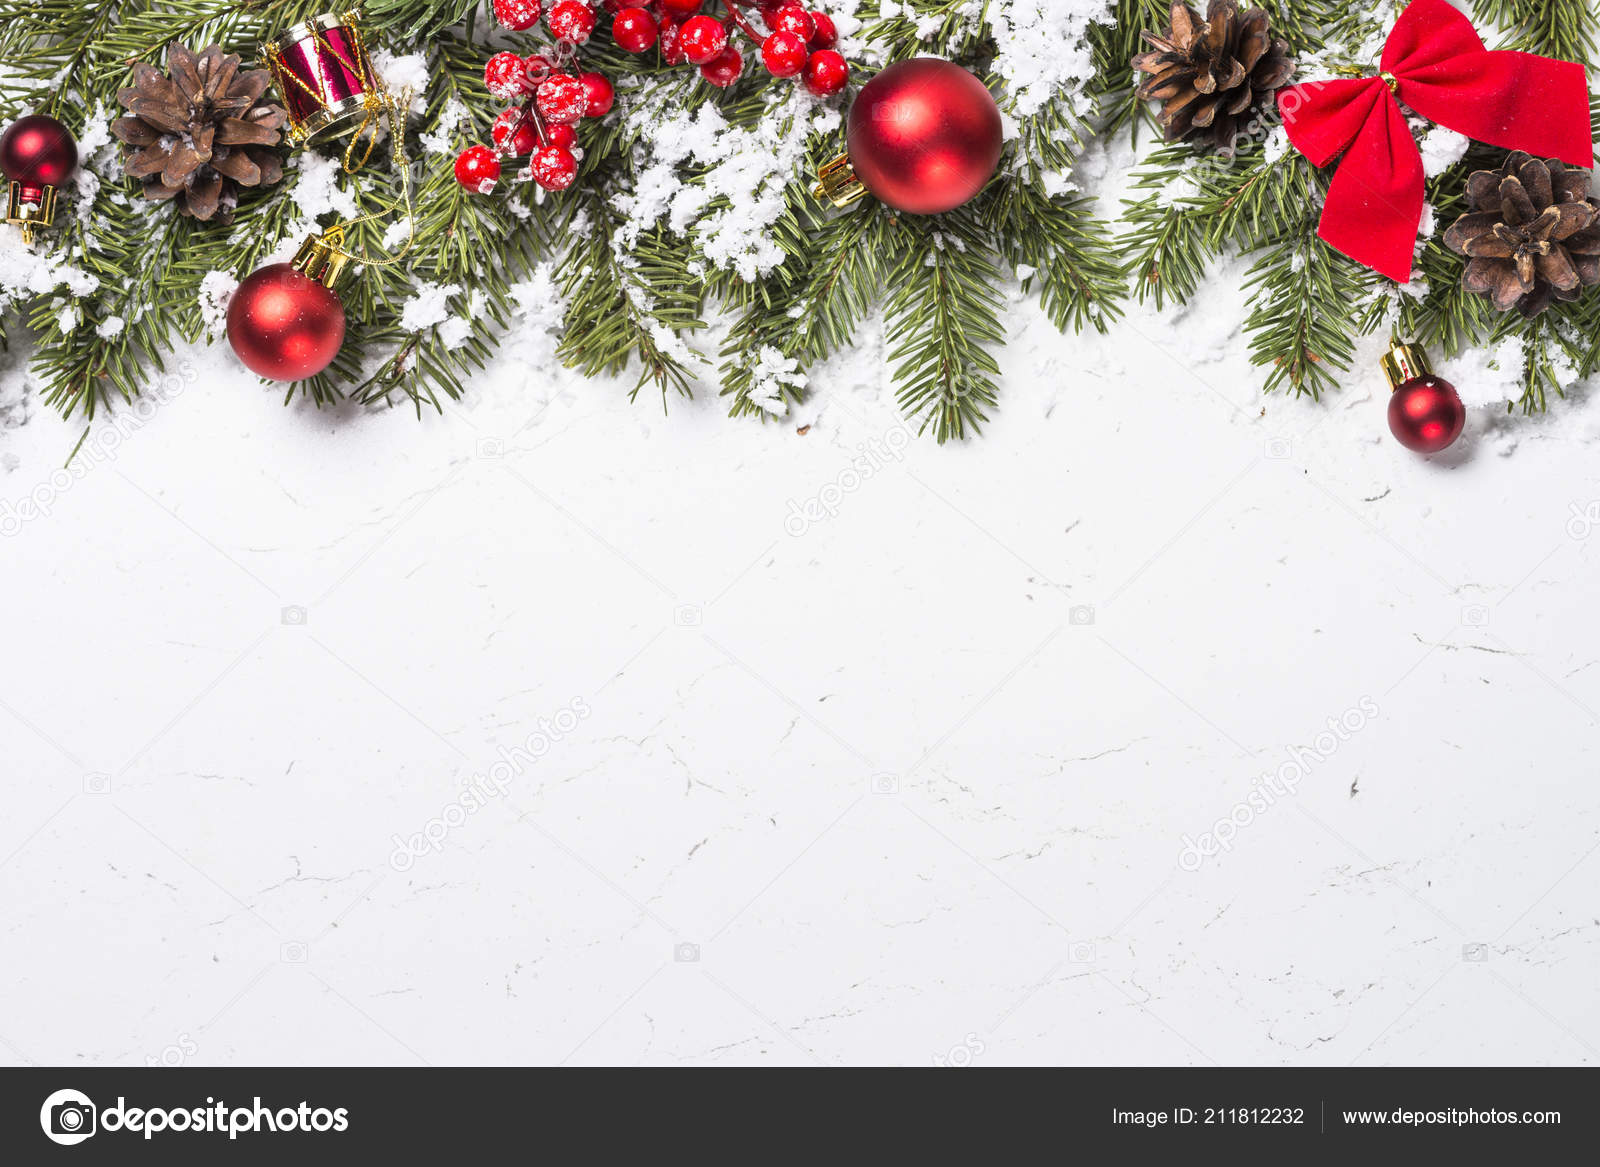 Christmas Background Red Christmas Decorations Snow Fir Tree